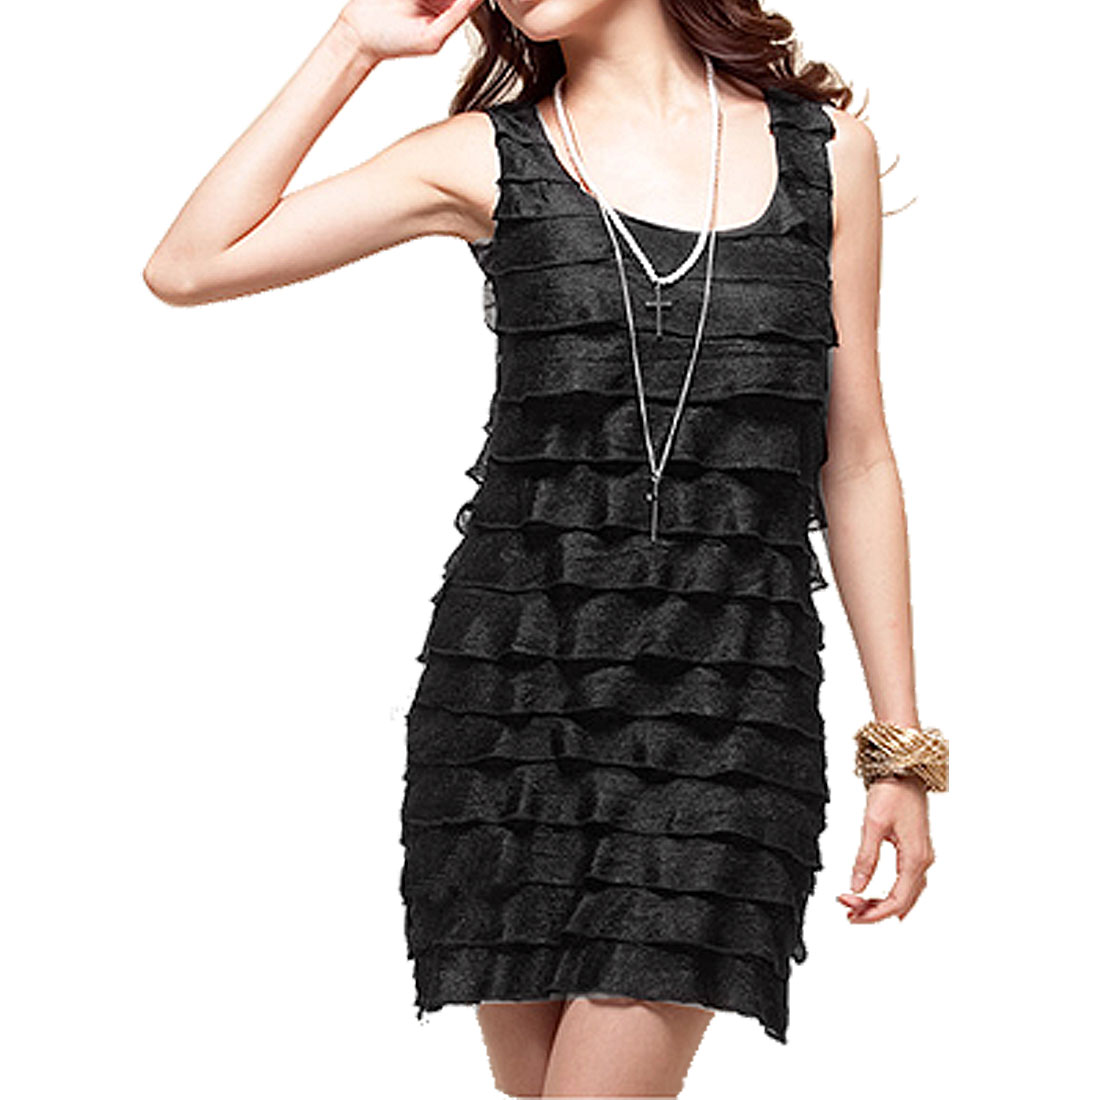 XS Solid Black Lining Meshy Tiered Tunic Tank Top for Ladies